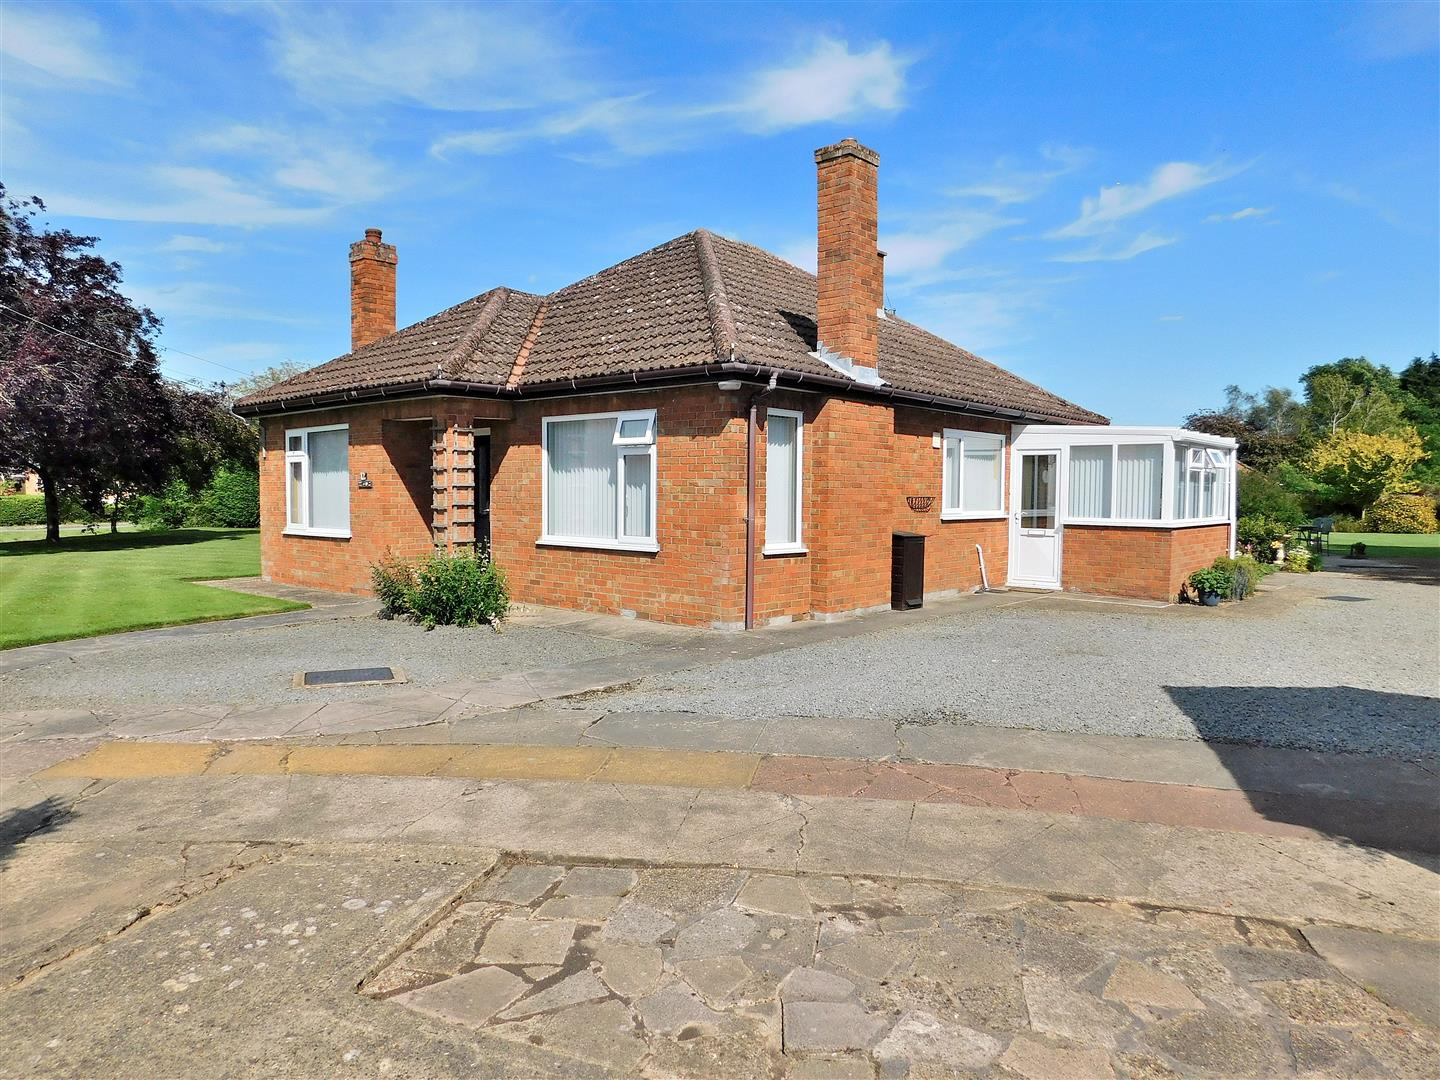 3 bed detached bungalow for sale in King's Lynn, PE34 4DN 0